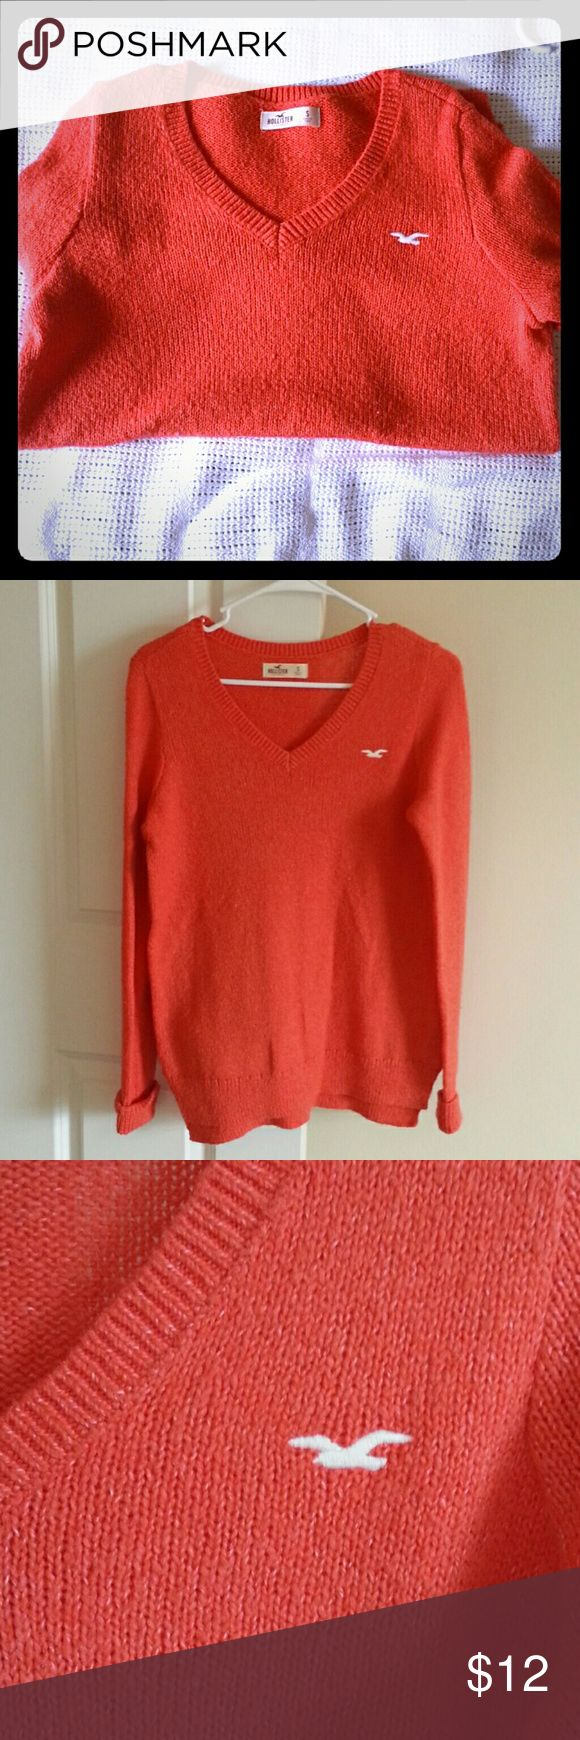 Hollister oranger knit jumper Hollister size small orange jumper worn only once. Very good condition. Hollister Sweaters Cardigans